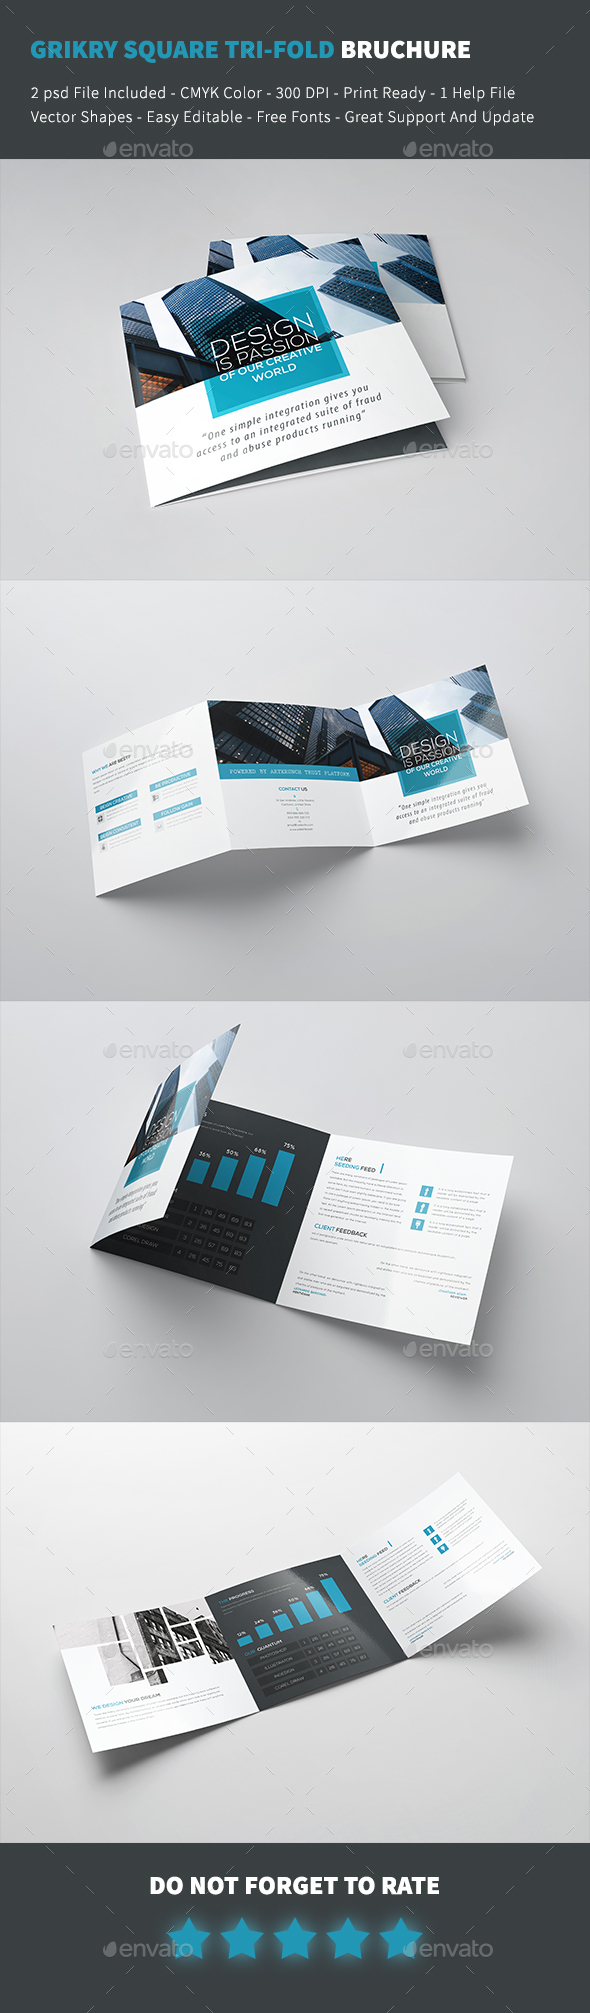 Grykry Square Tri-fold Brochure Template - Corporate Brochures